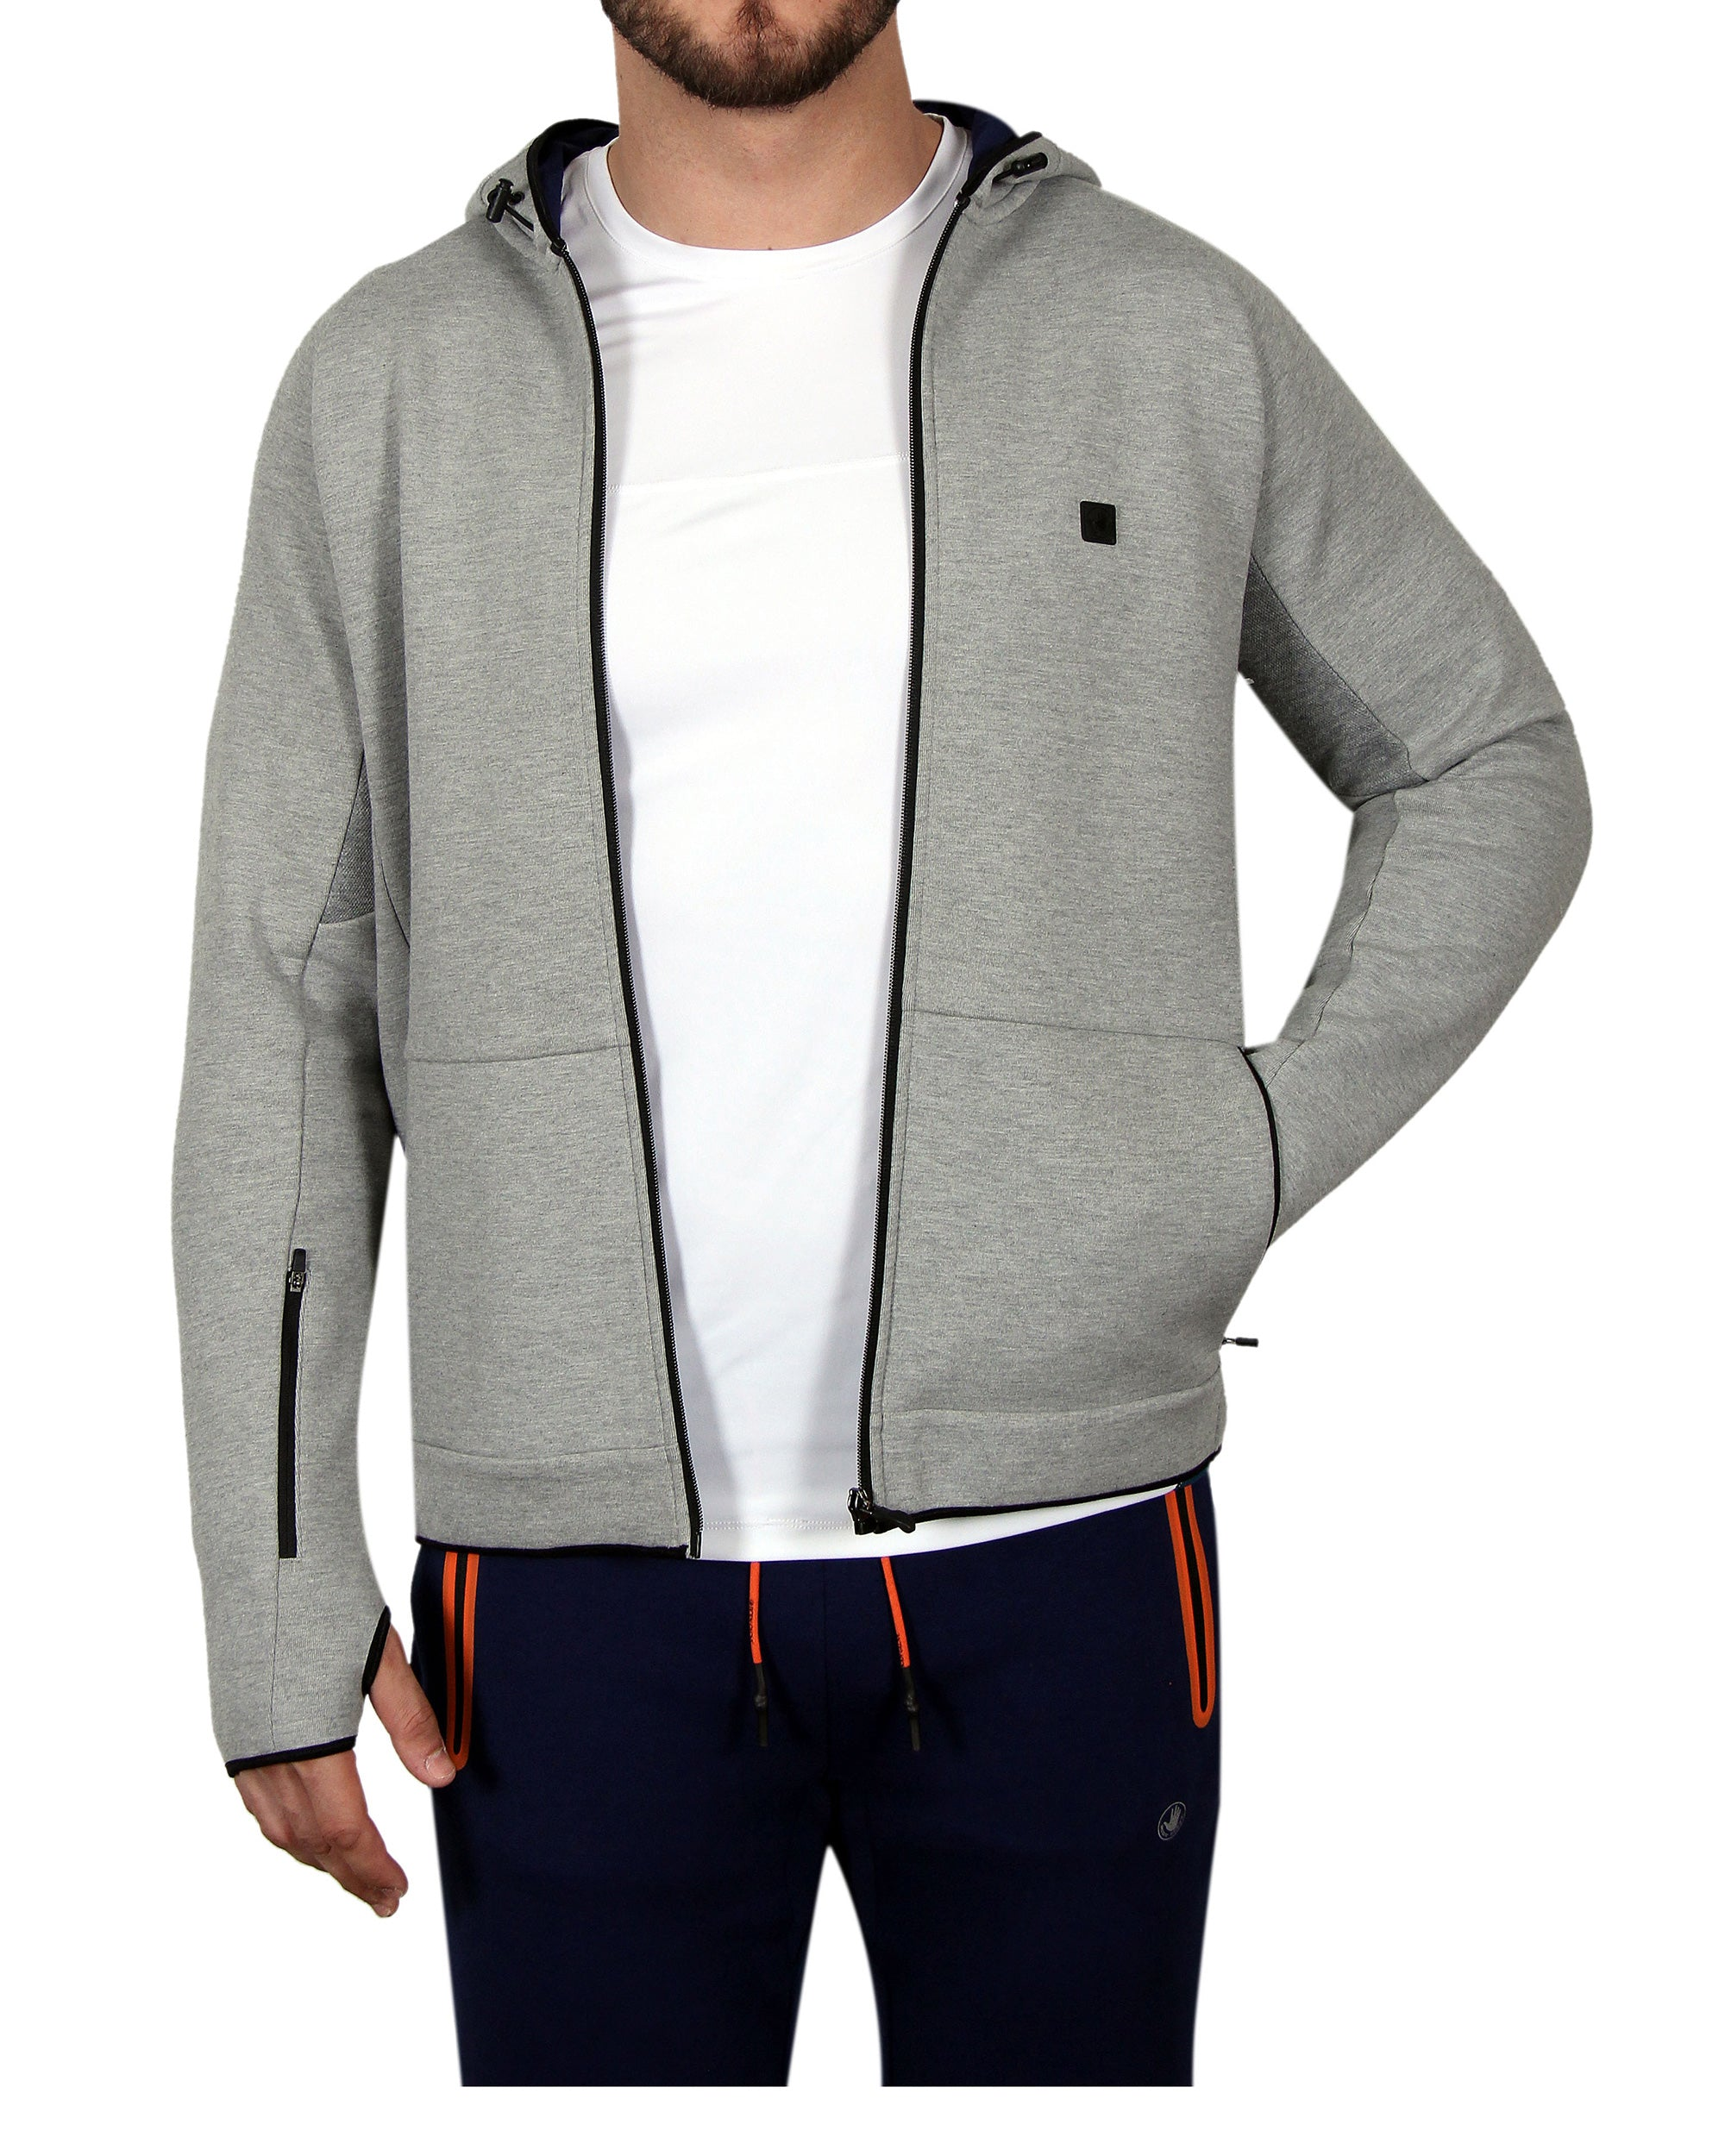 Men's Zip-Front Fleece Hoodie - Grey